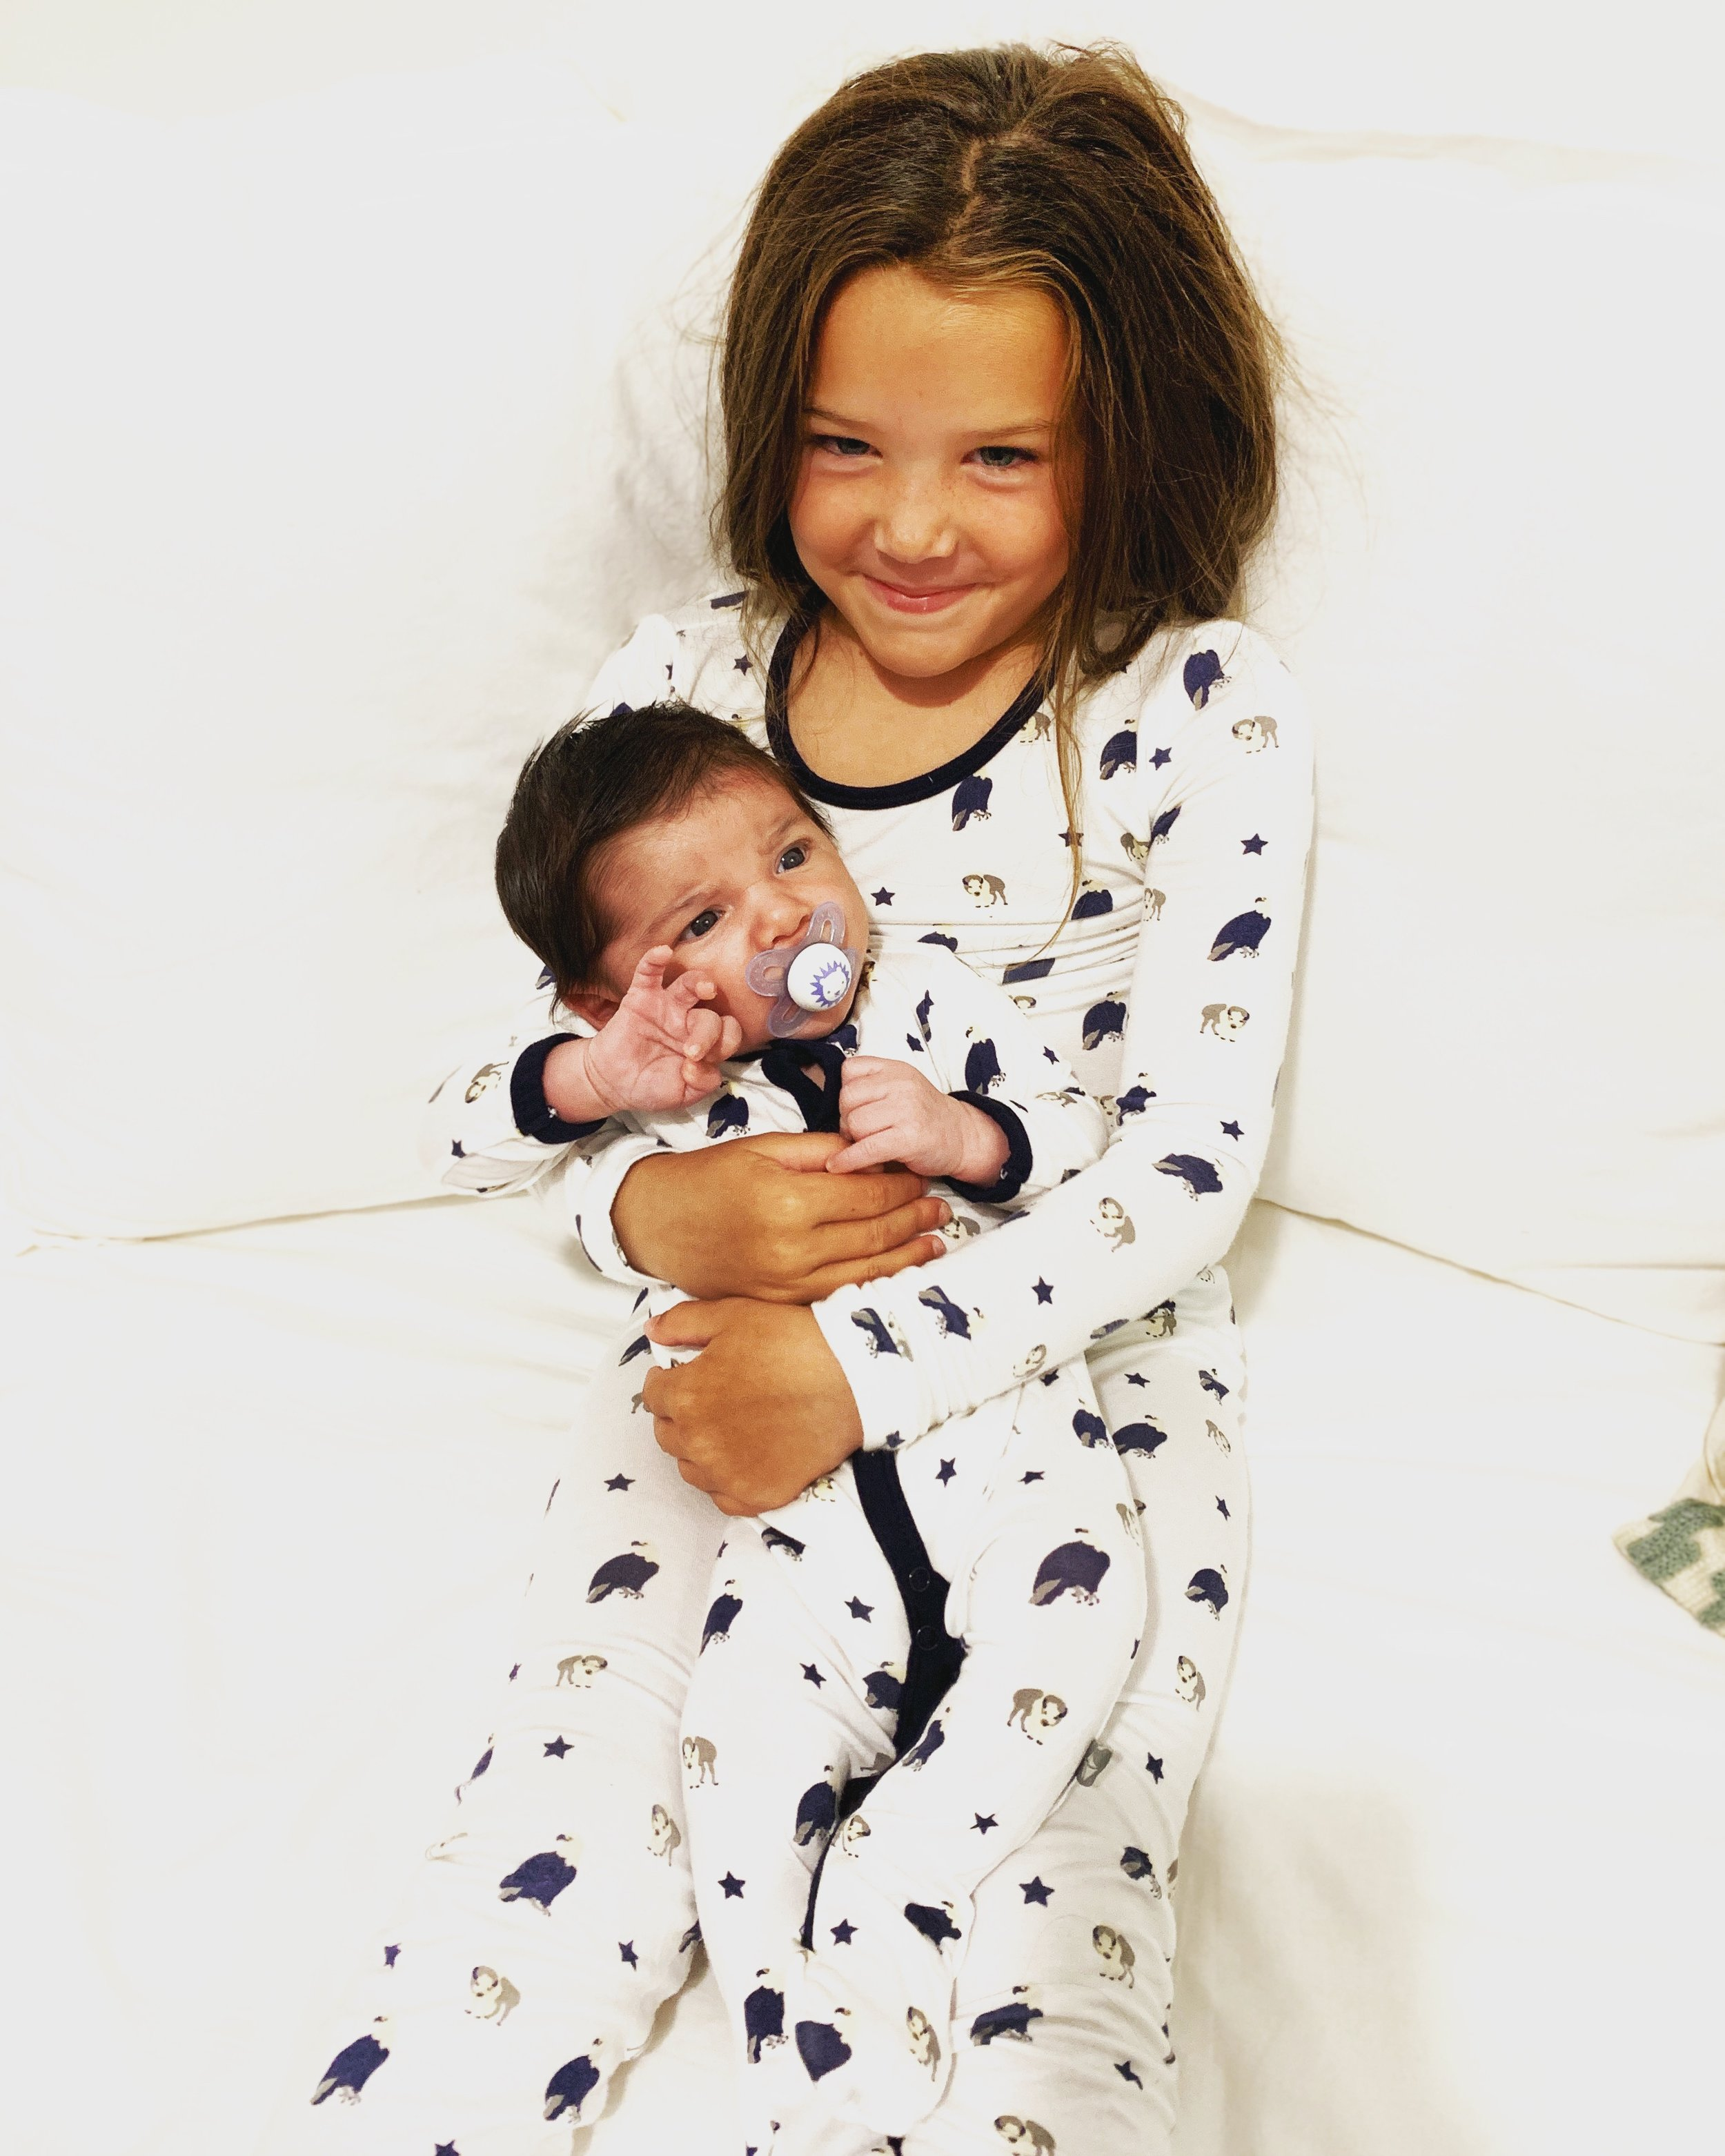 - Their pajamas are the softest around and they make great sleep bags. I also have their ring sling that I will soon use.